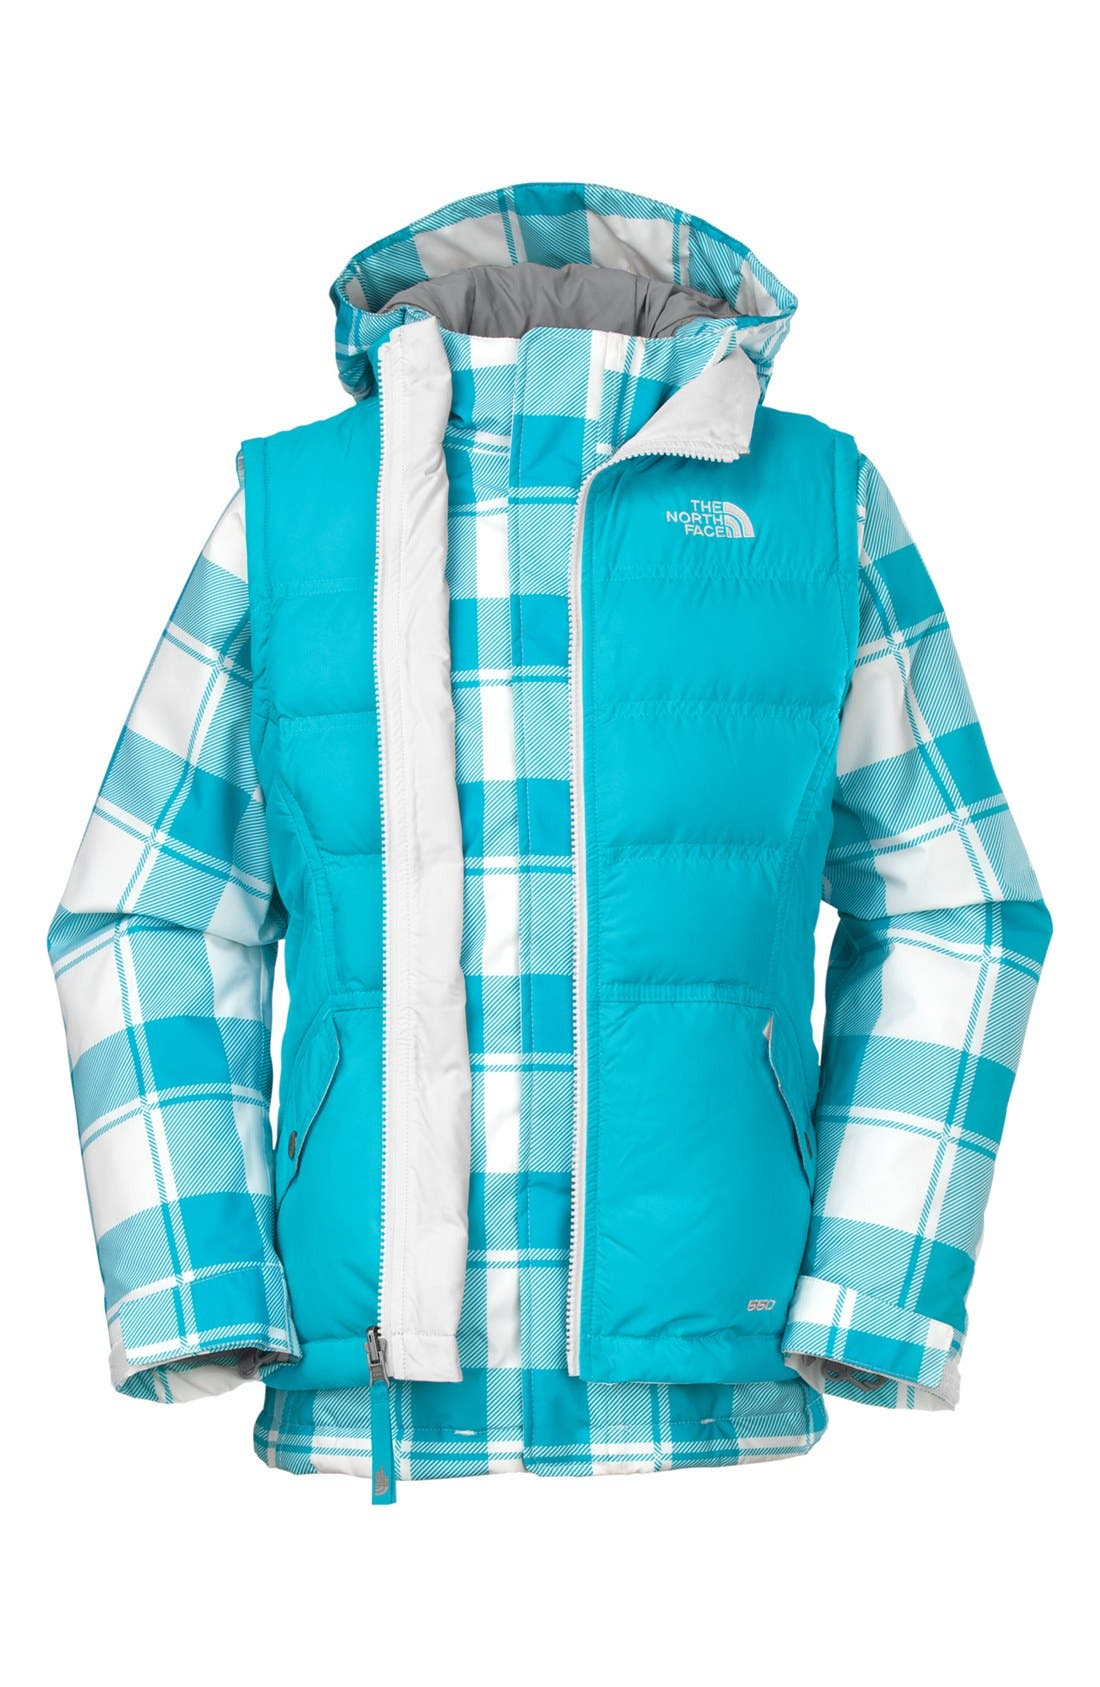 Main Image - The North Face 'Vestamatic' TriClimate® 3-in-1 Jacket (Little Girls & Big Girls)